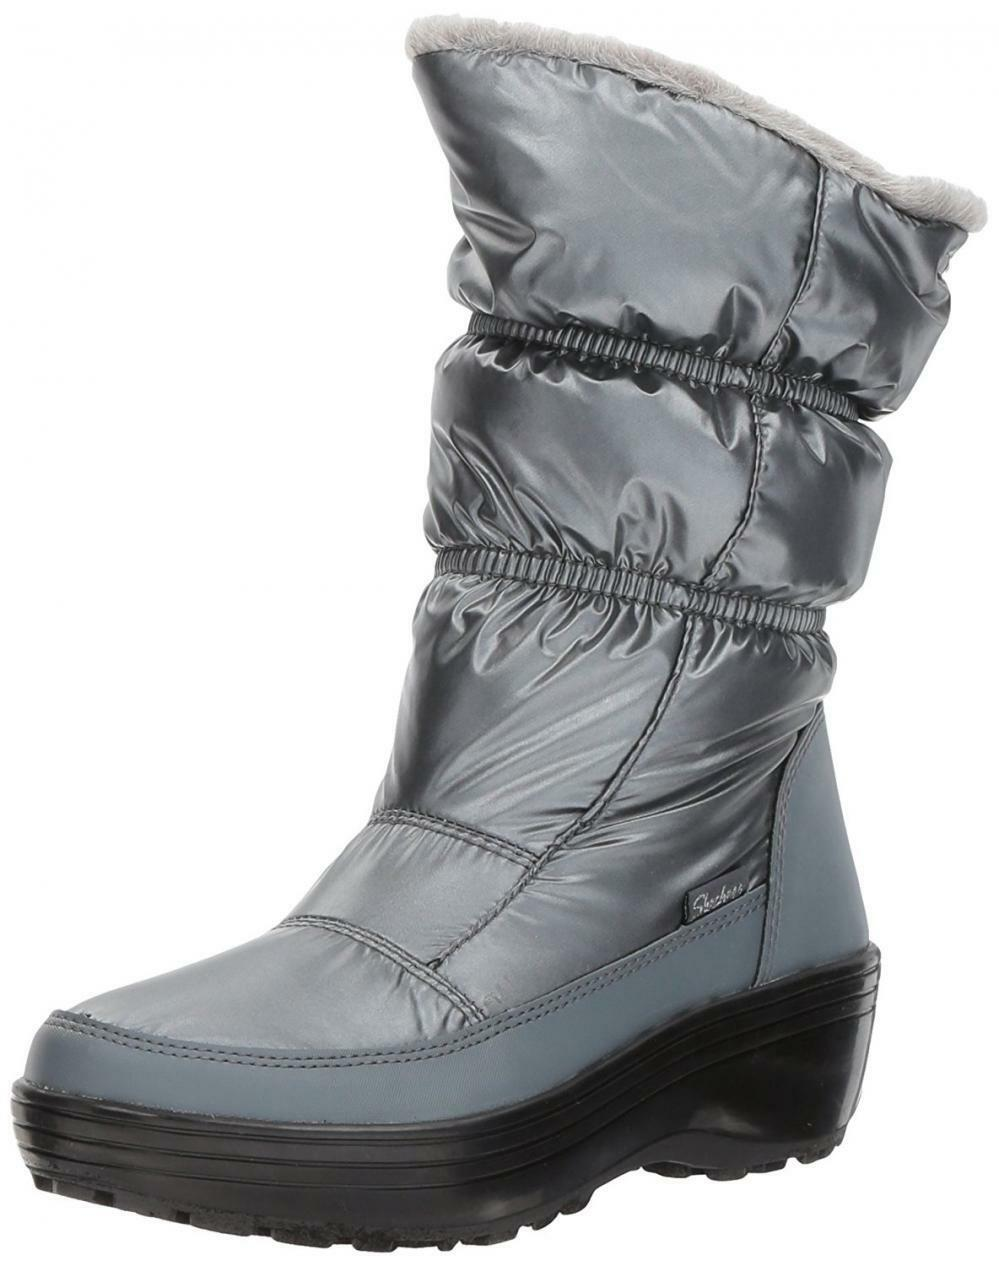 Skechers Women's Alaska-Tall Quilted Snow Boot